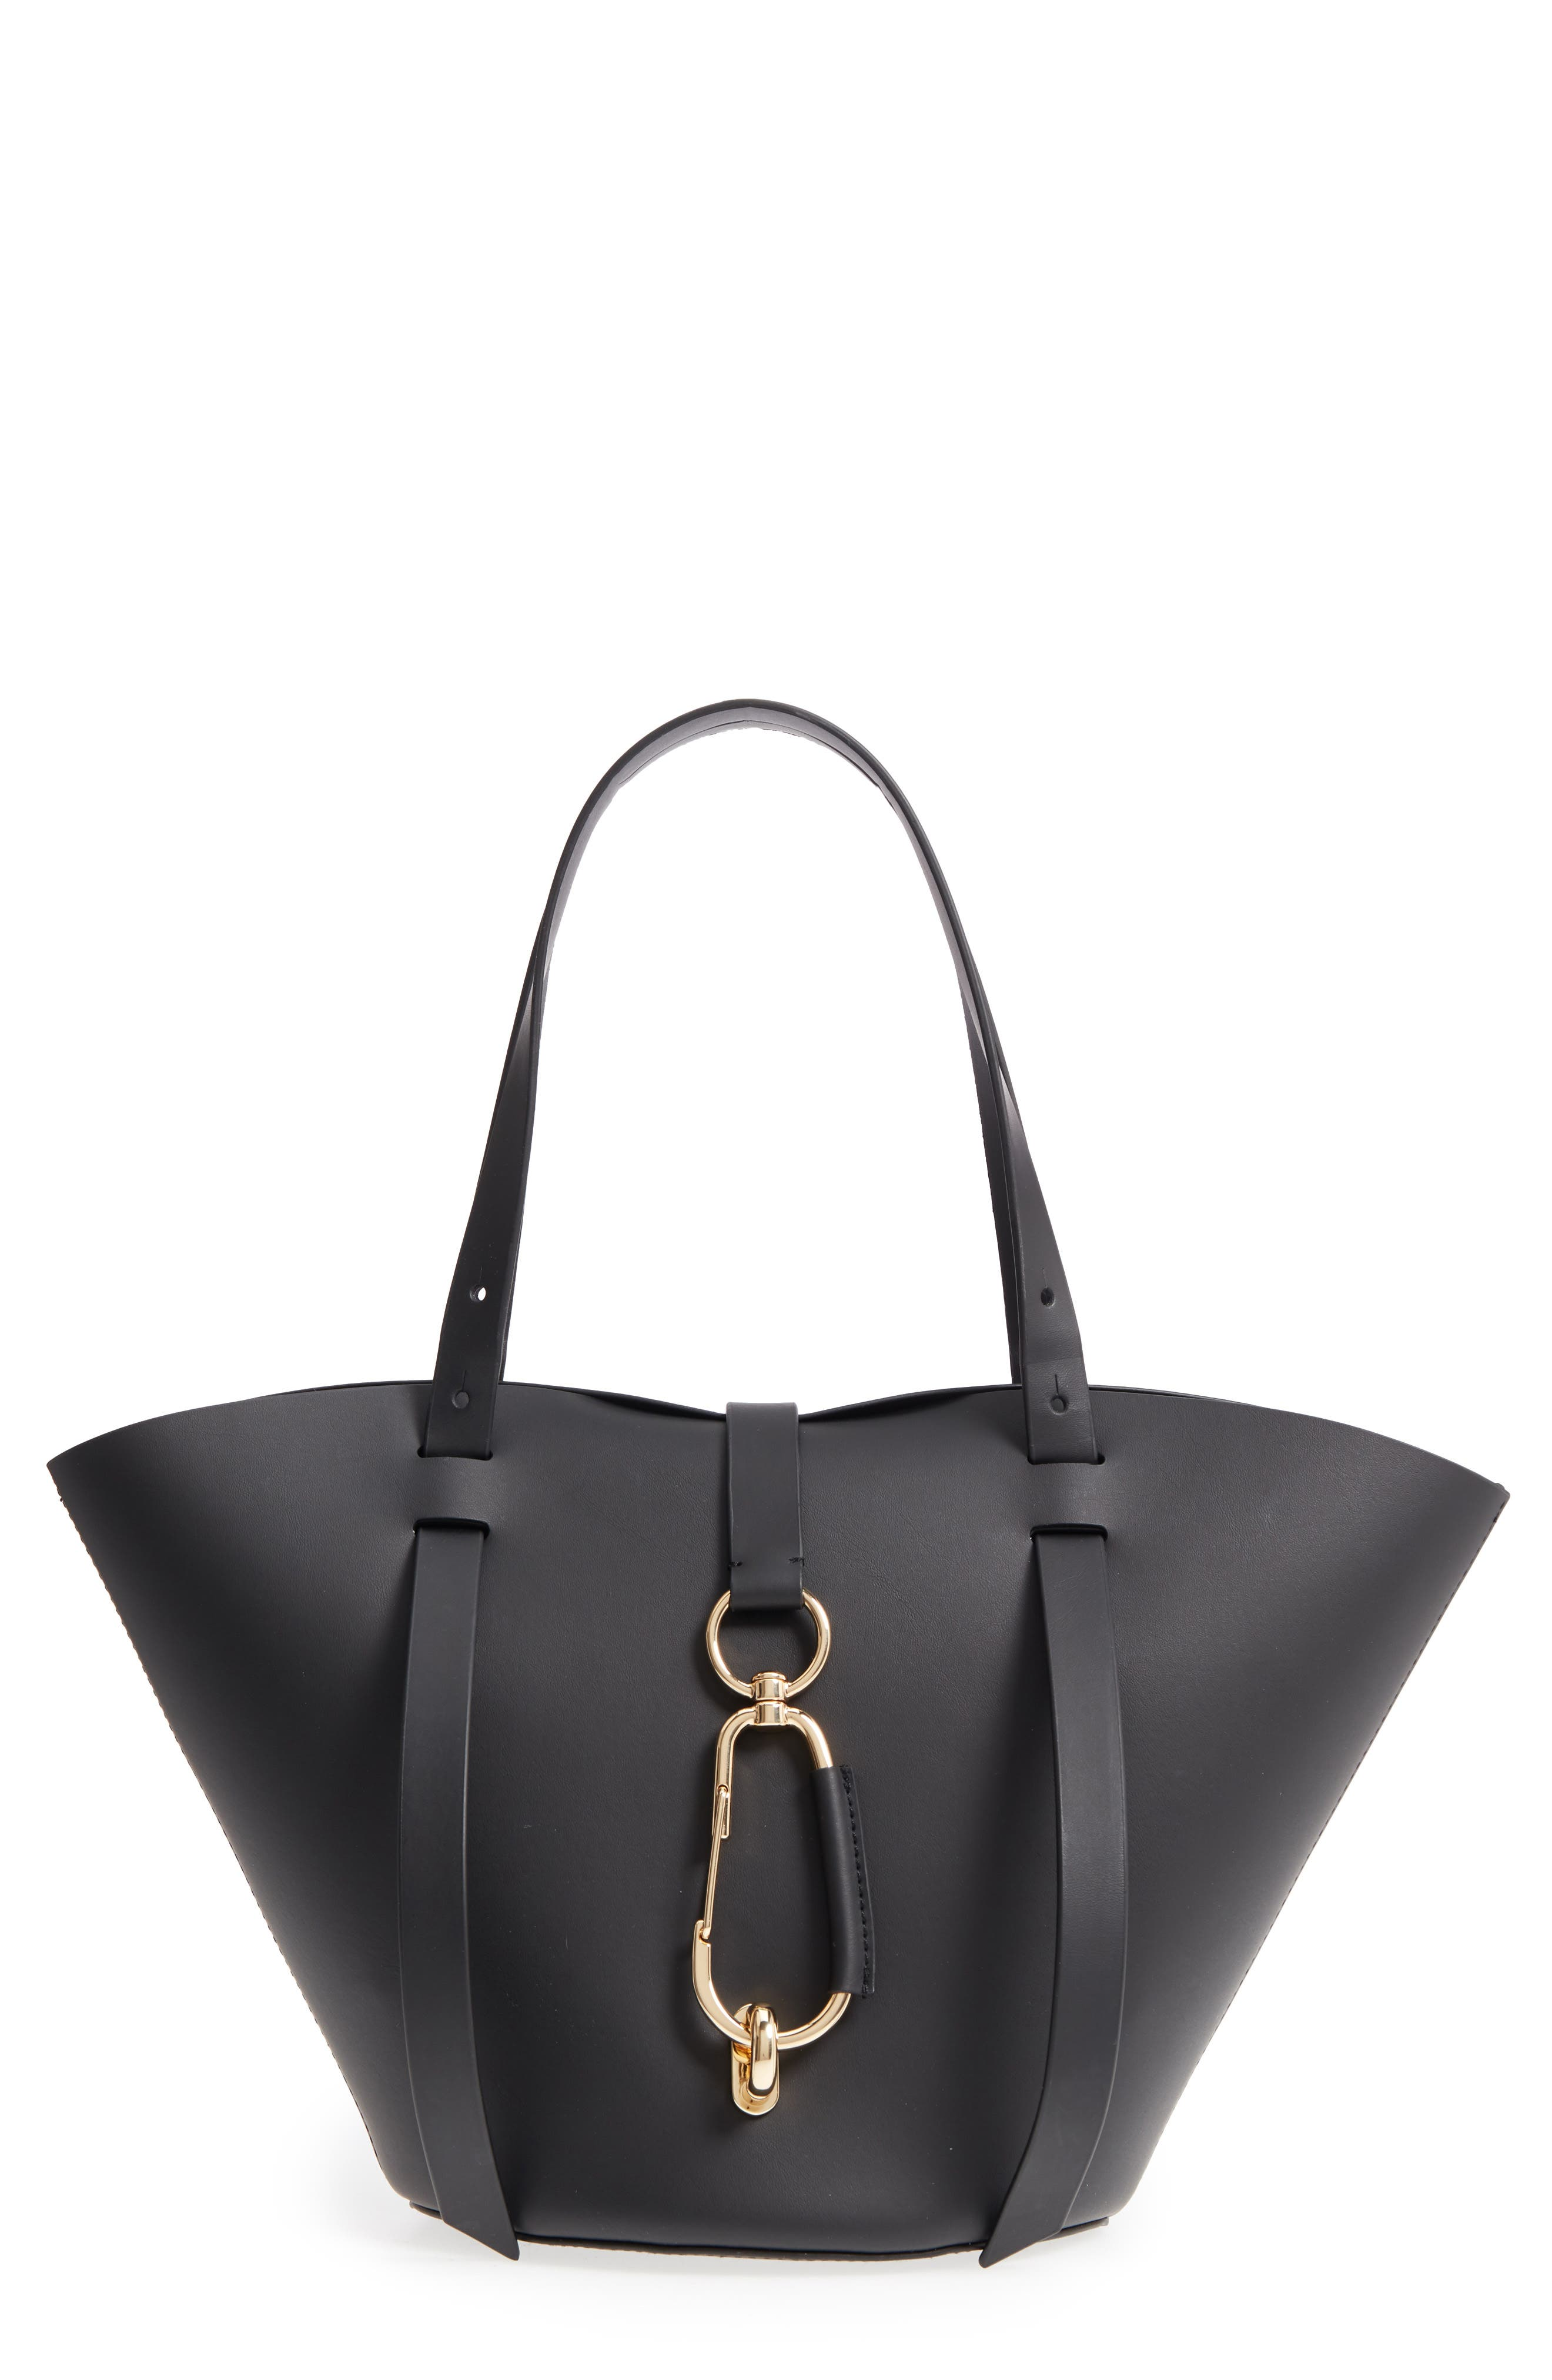 ZAC ZAC POSEN, Small Belay Leather Tote, Main thumbnail 1, color, 001